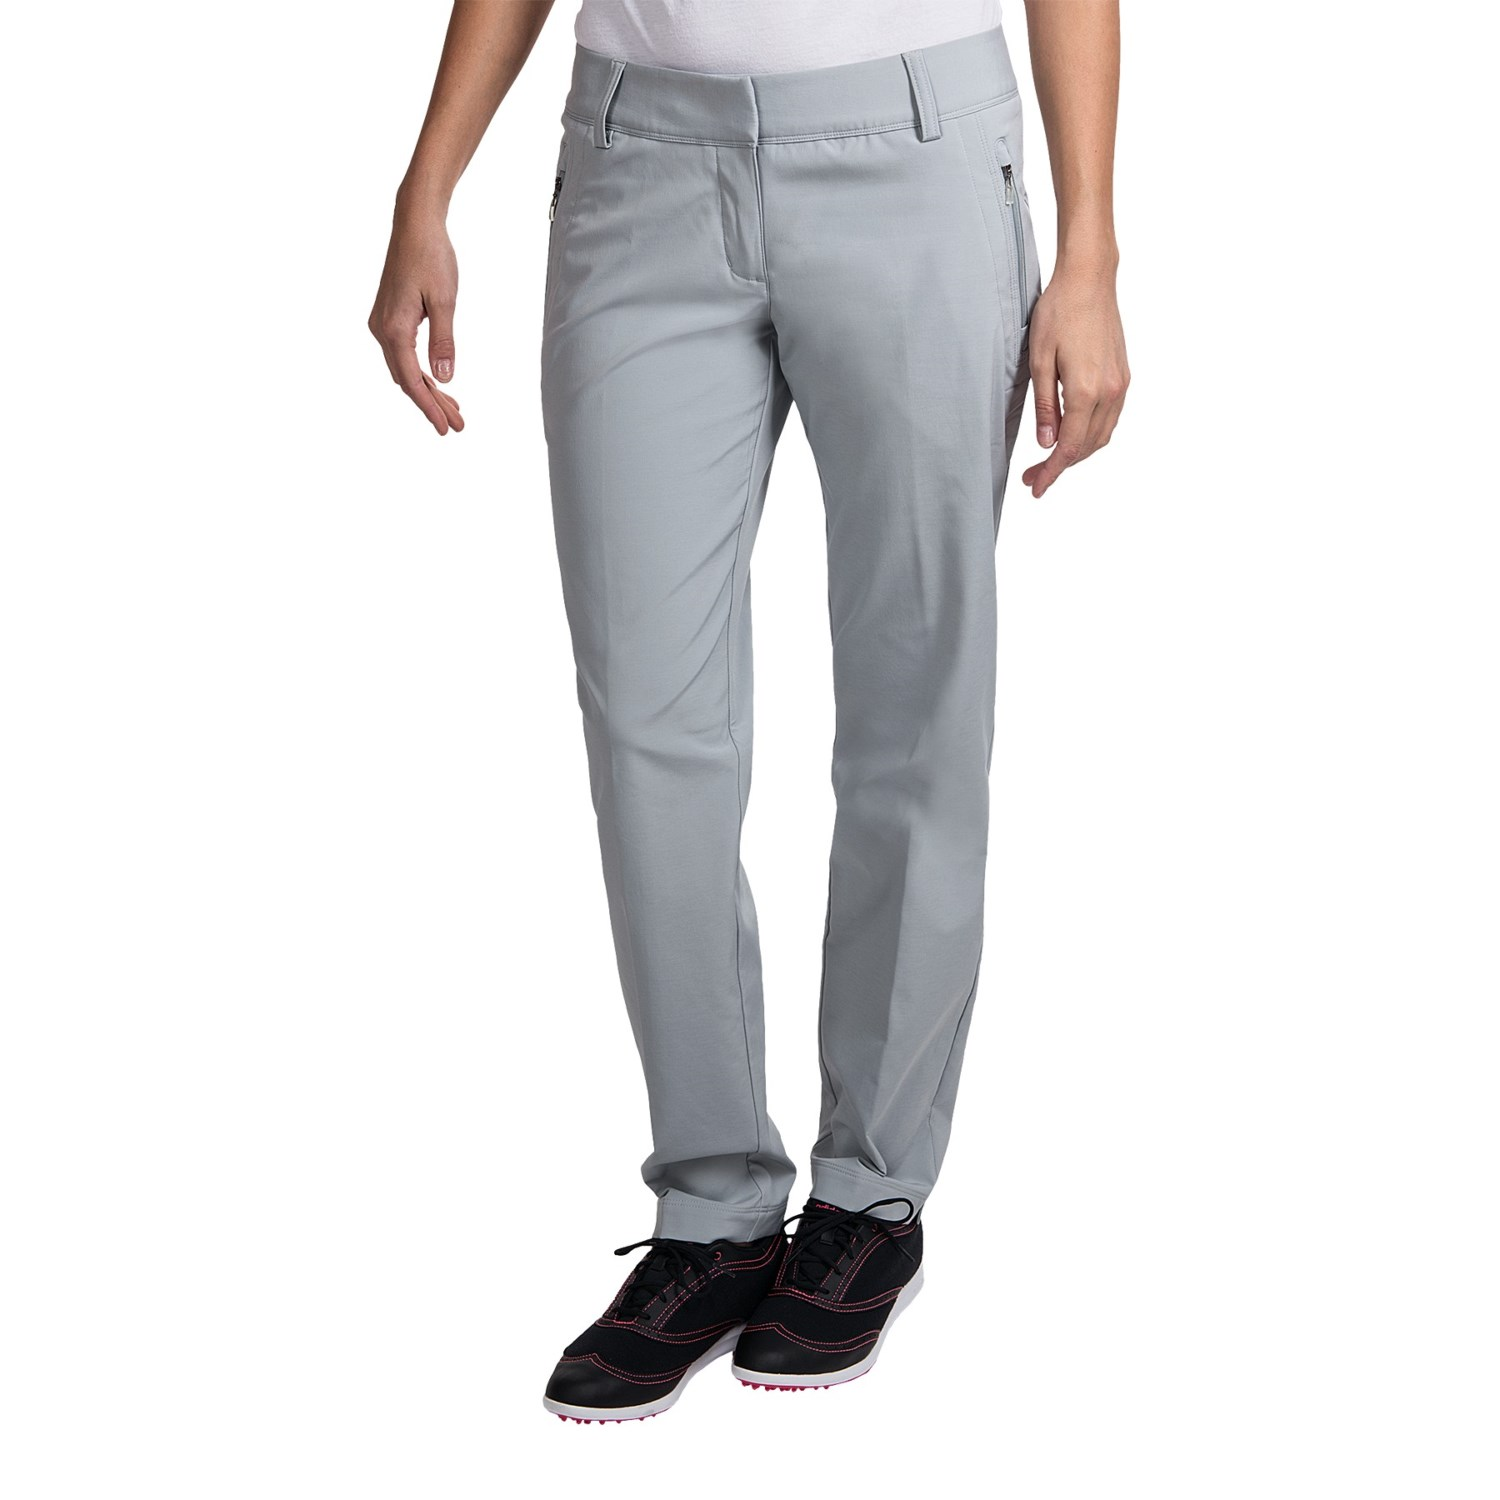 Creative Tail Womens Tuxedo Ponte Golf Pants  Carl39s Golfland